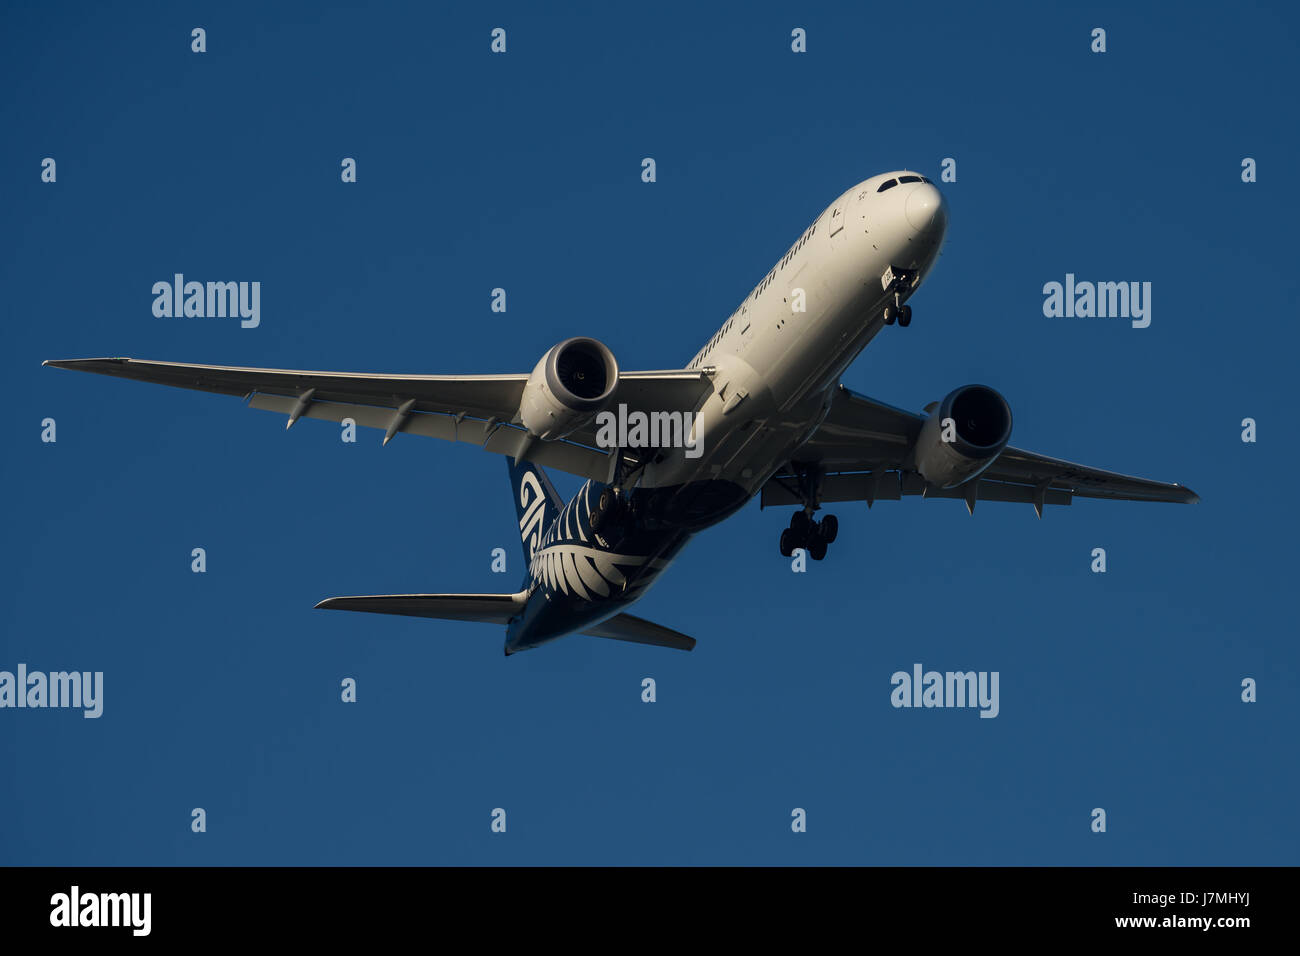 Air New Zealand Boeing 787 Dreamliner on Final approach to Sydney Airport on Tuesday 23 May 2017 - Stock Image